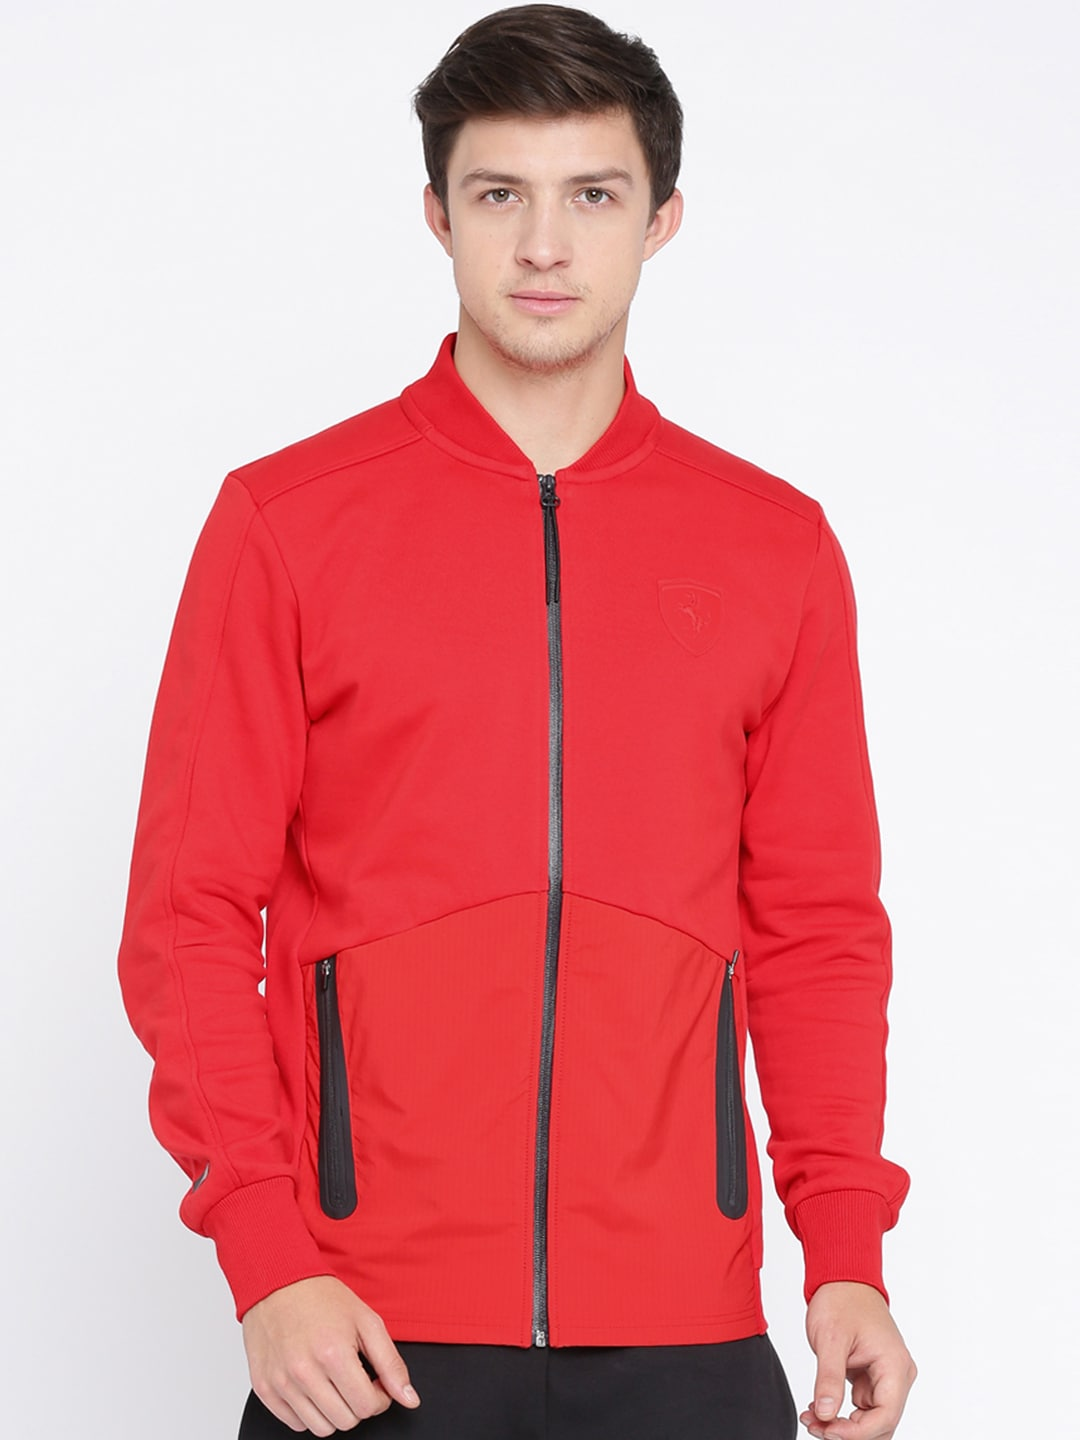 2c216dd7391a2f Puma Red Ferrari Jackets - Buy Puma Red Ferrari Jackets online in India